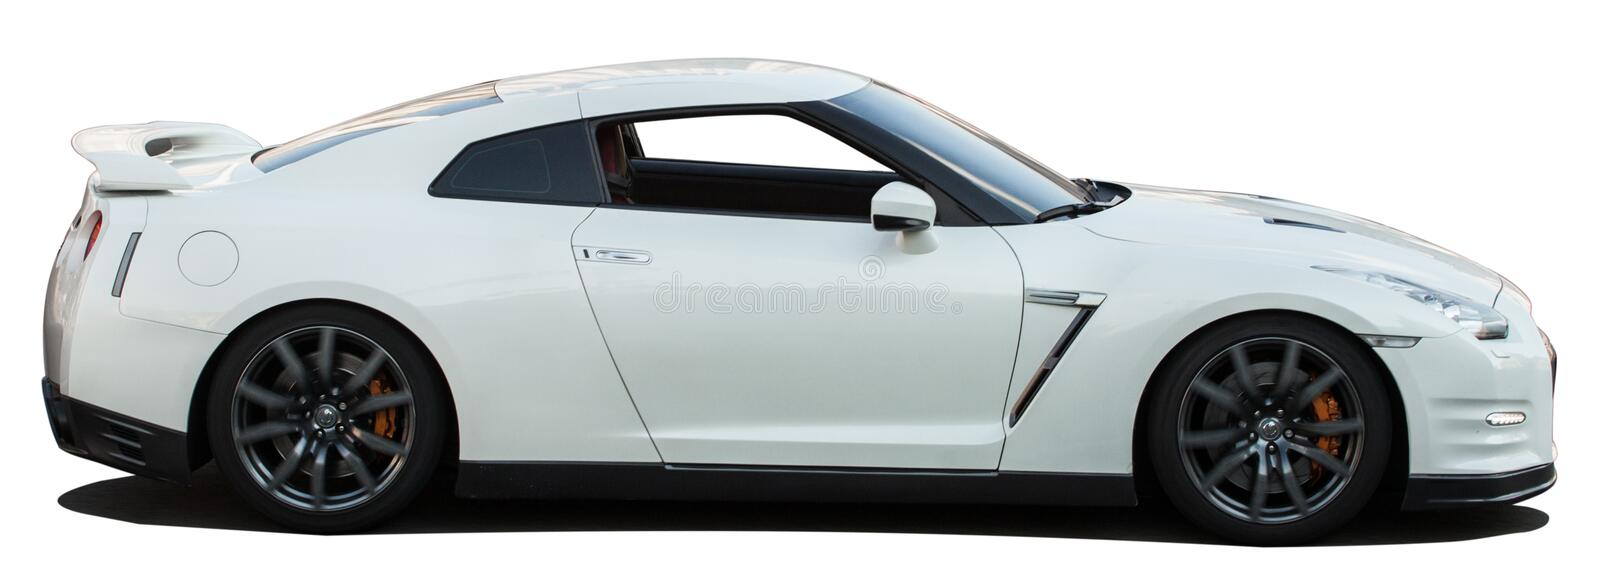 Download White Nissan Skyline GTR On A Transparent Background Stock Image    Image Of Black,